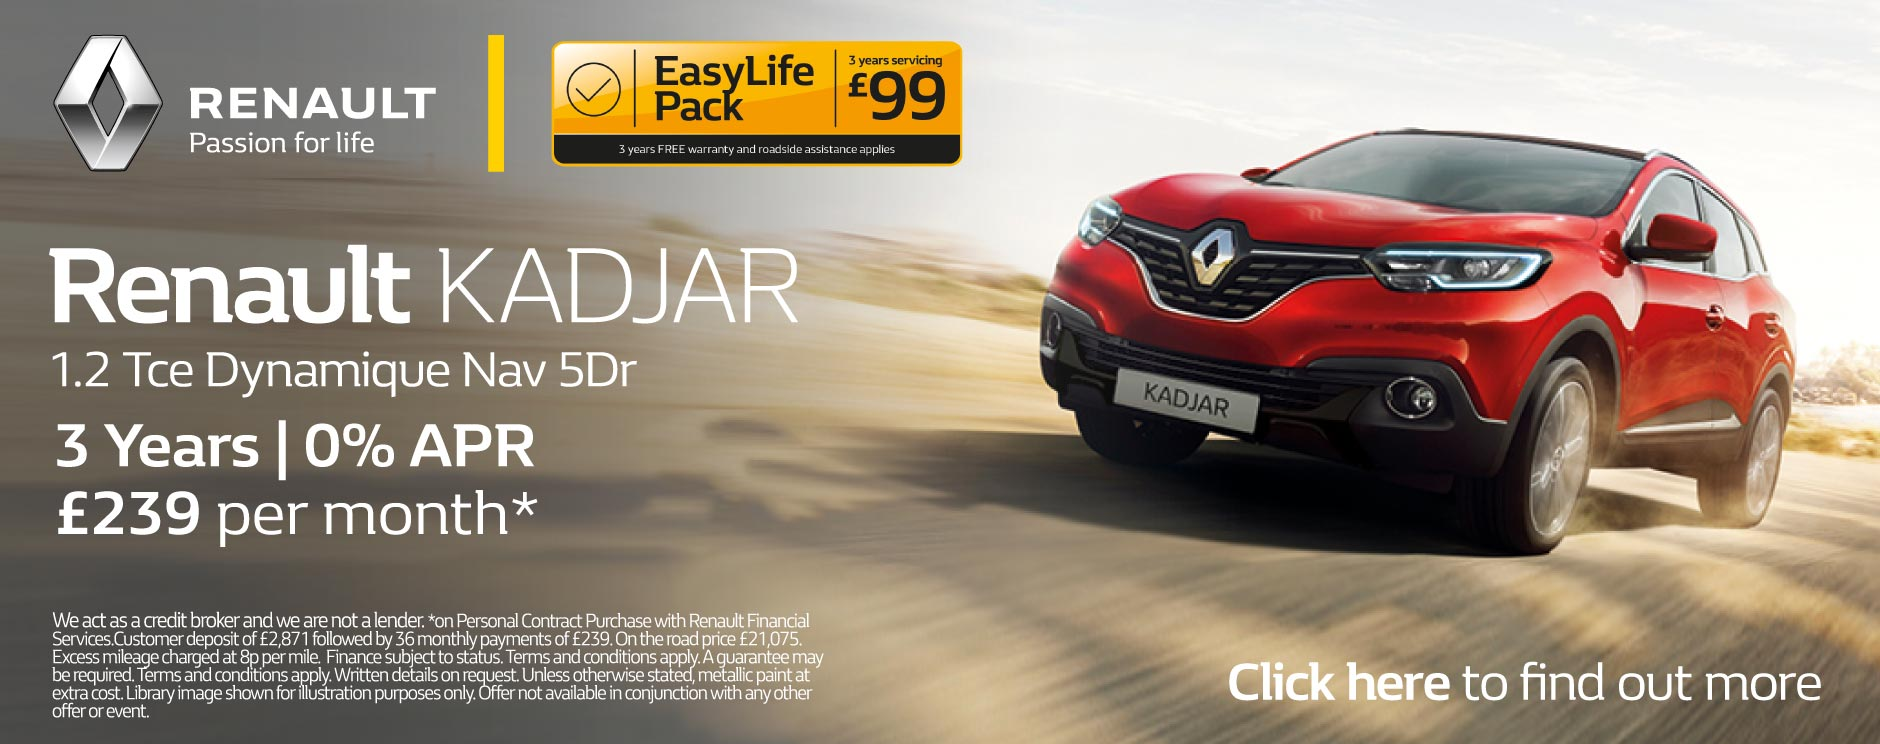 renault kadjar deals new renault kadjar for sale bristol street motors. Black Bedroom Furniture Sets. Home Design Ideas